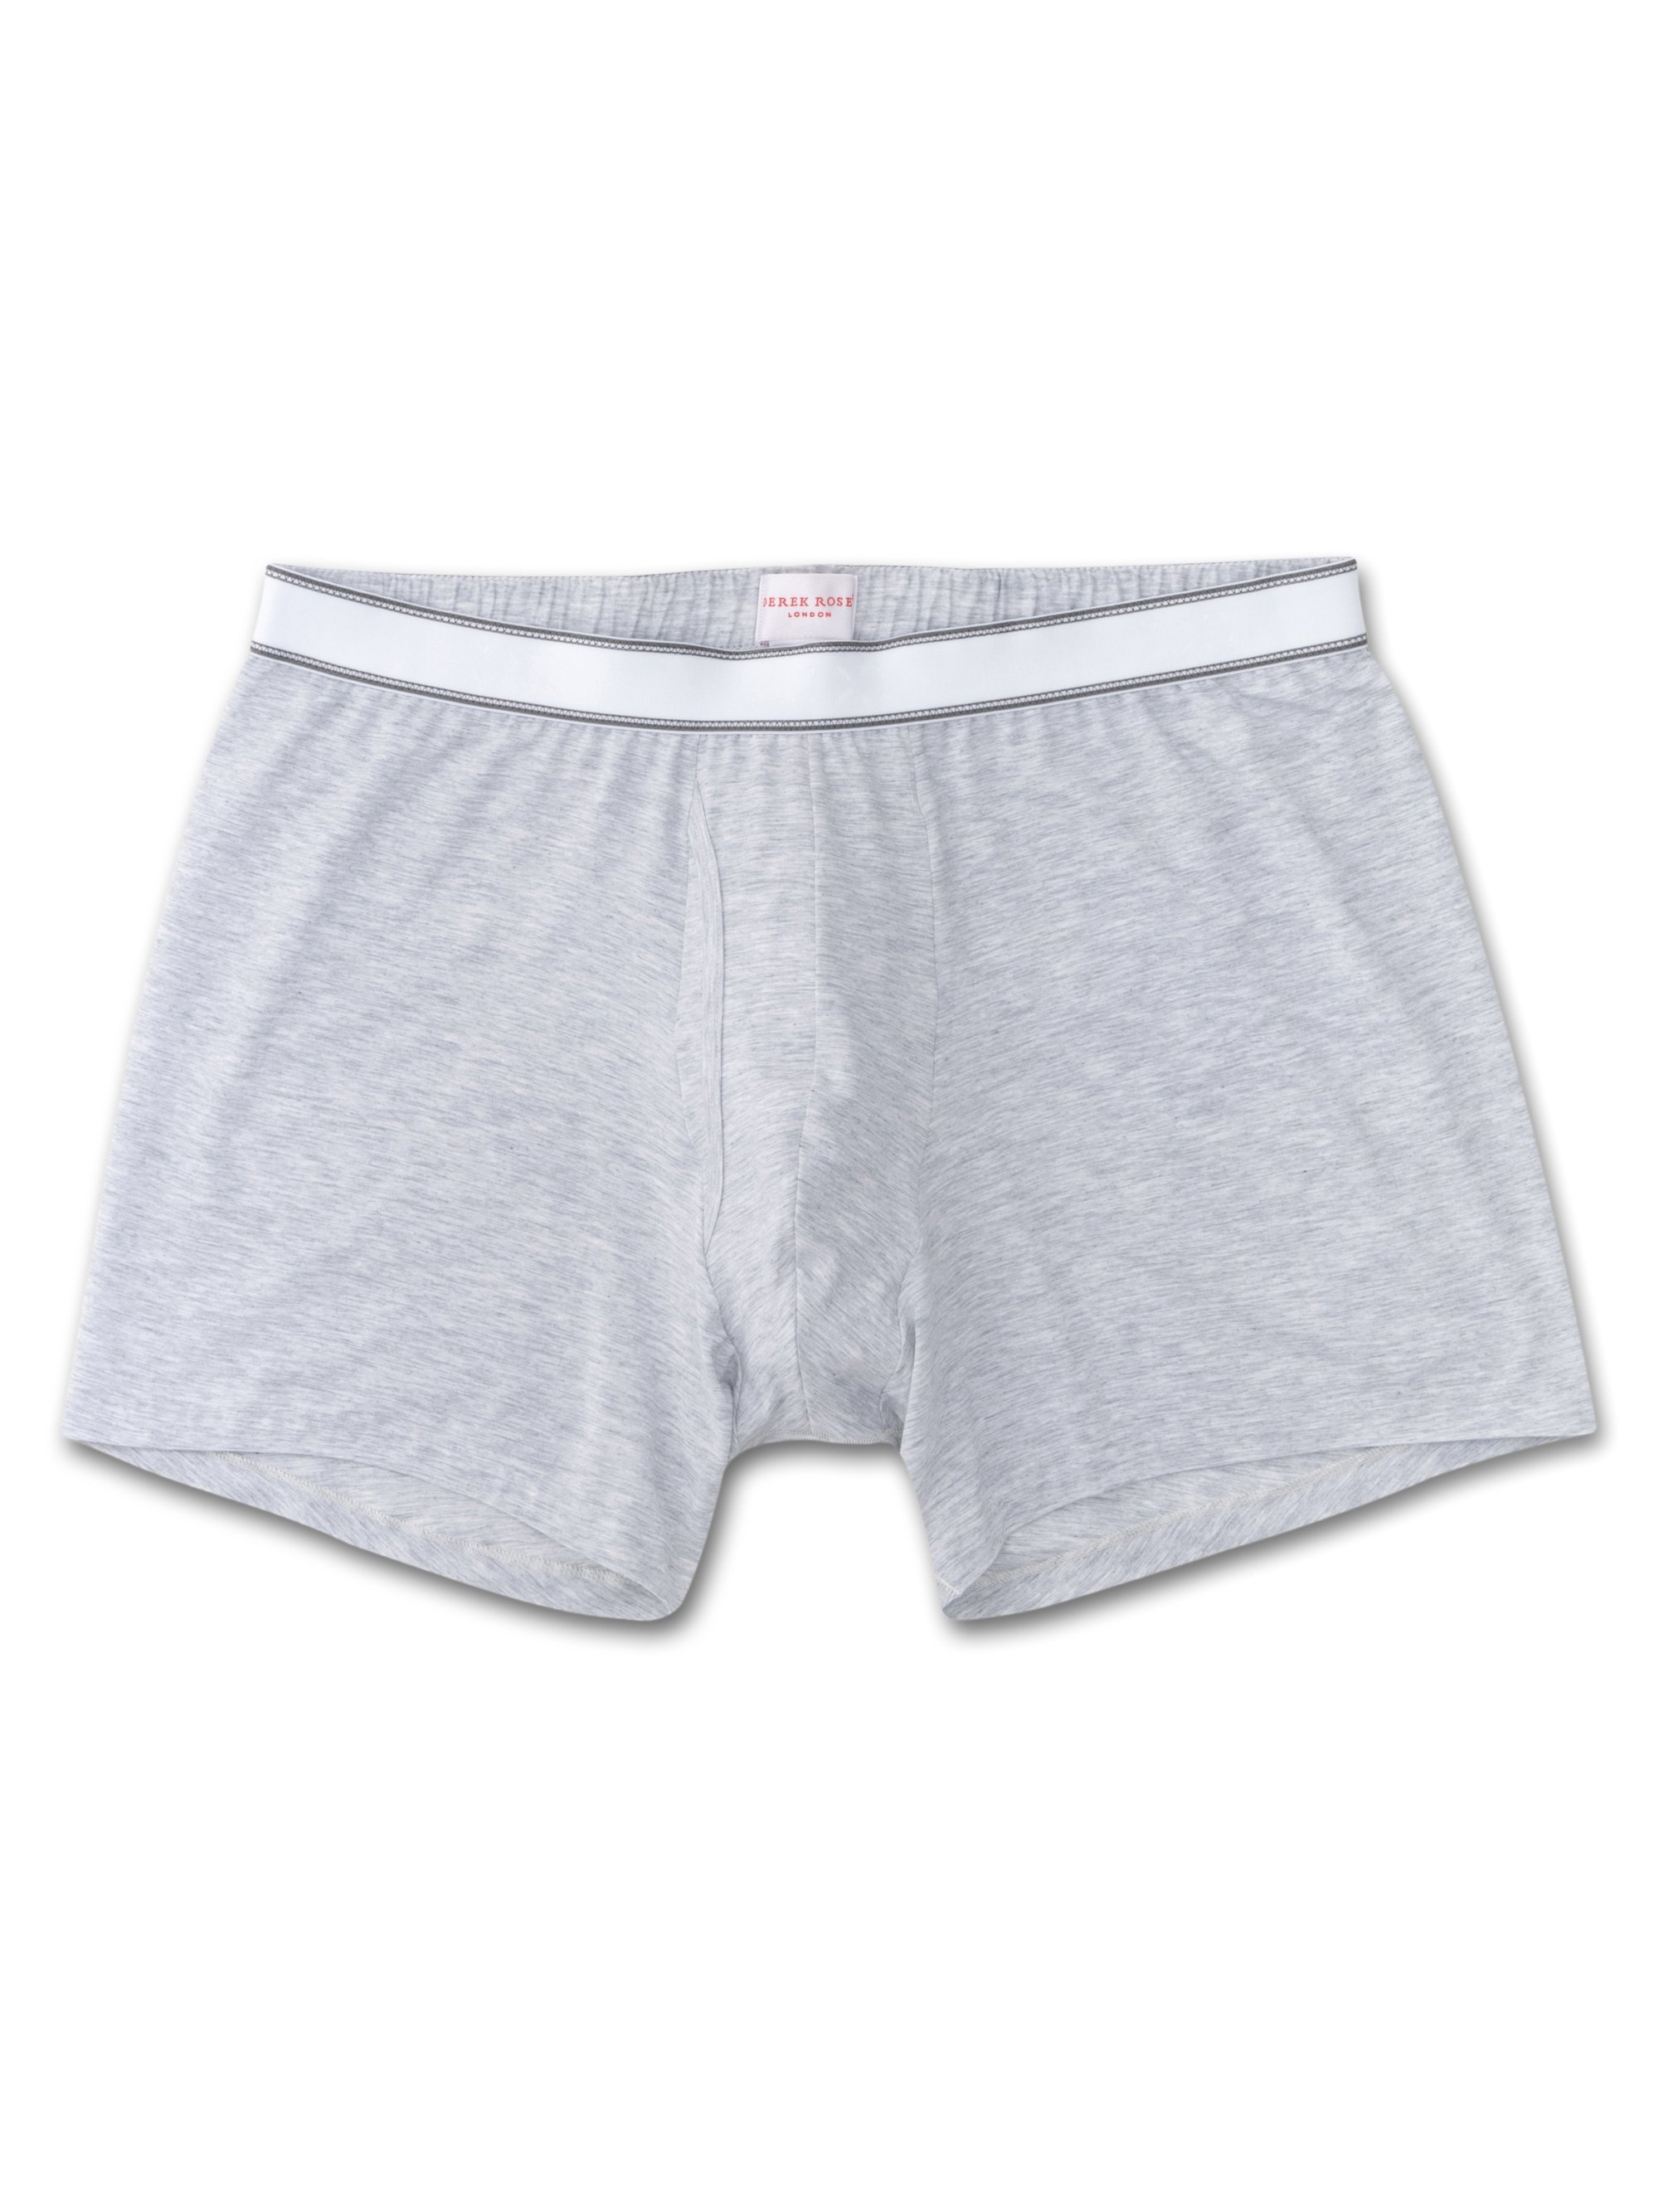 Men's Trunks Ethan Micro Modal Stretch Silver